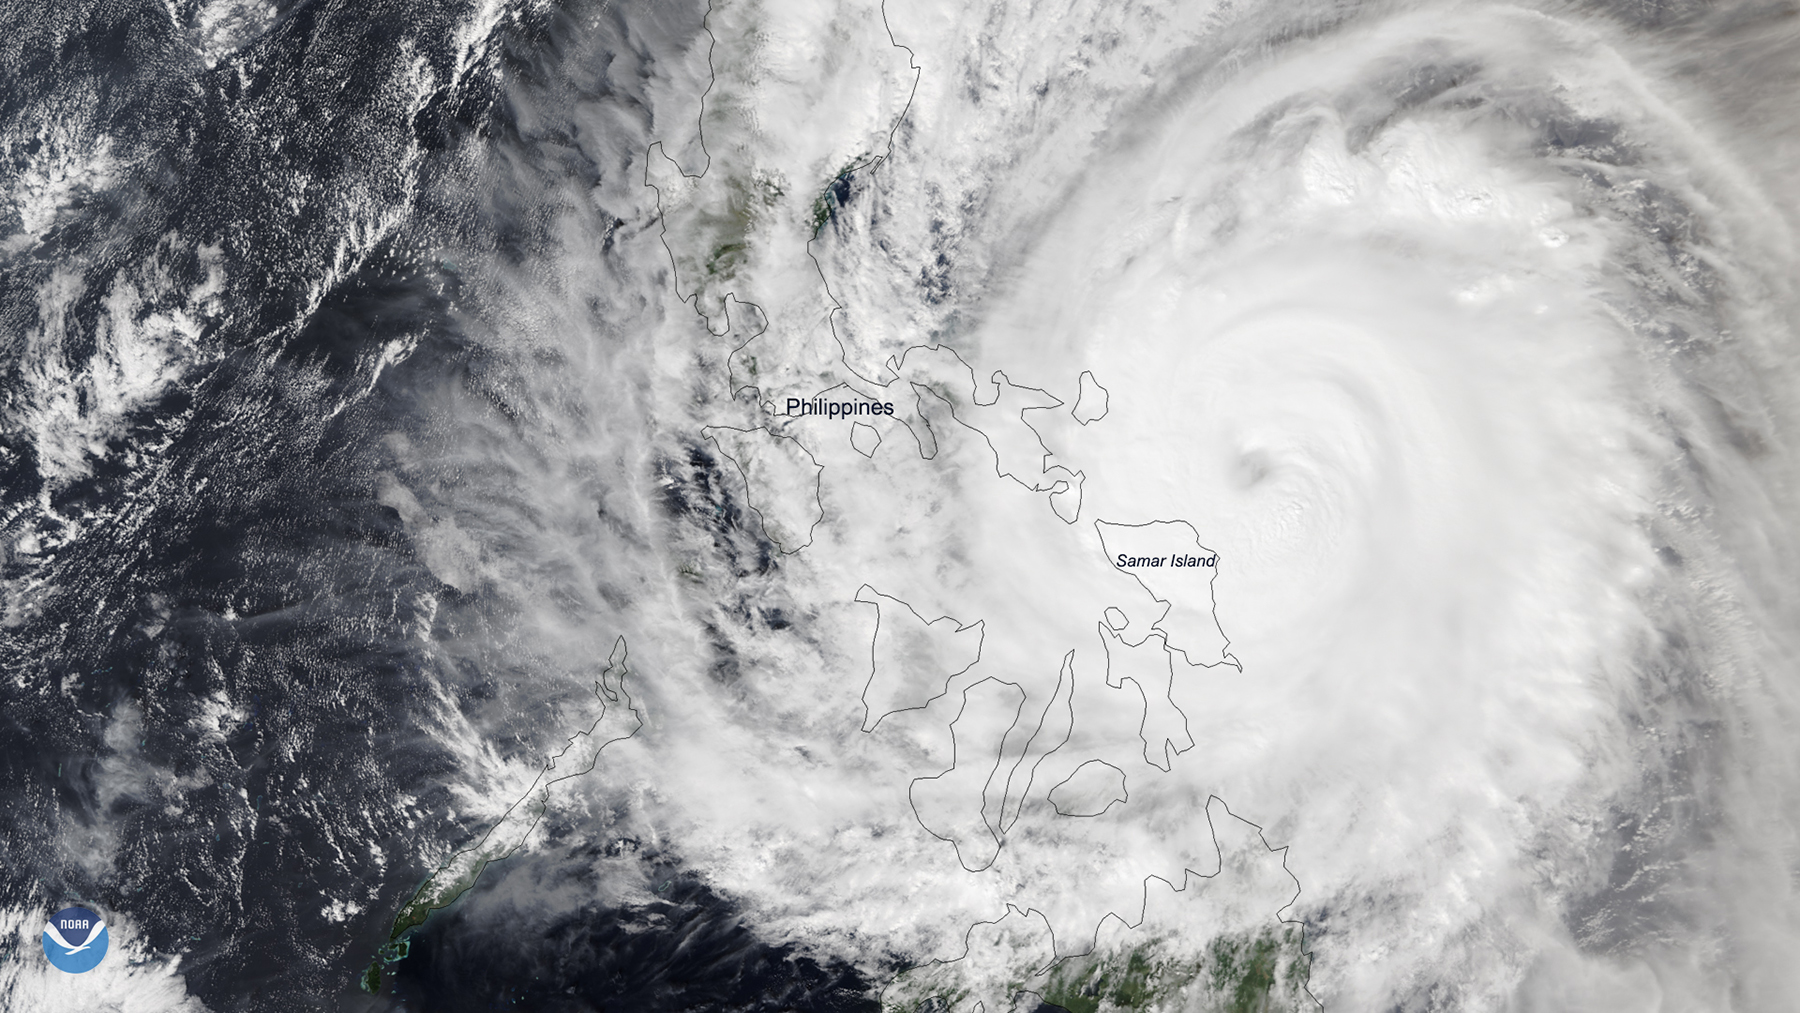 Typhoon Kammuri as seen from above on Dec. 2, 2019. (Photo courtesy of NOAA)